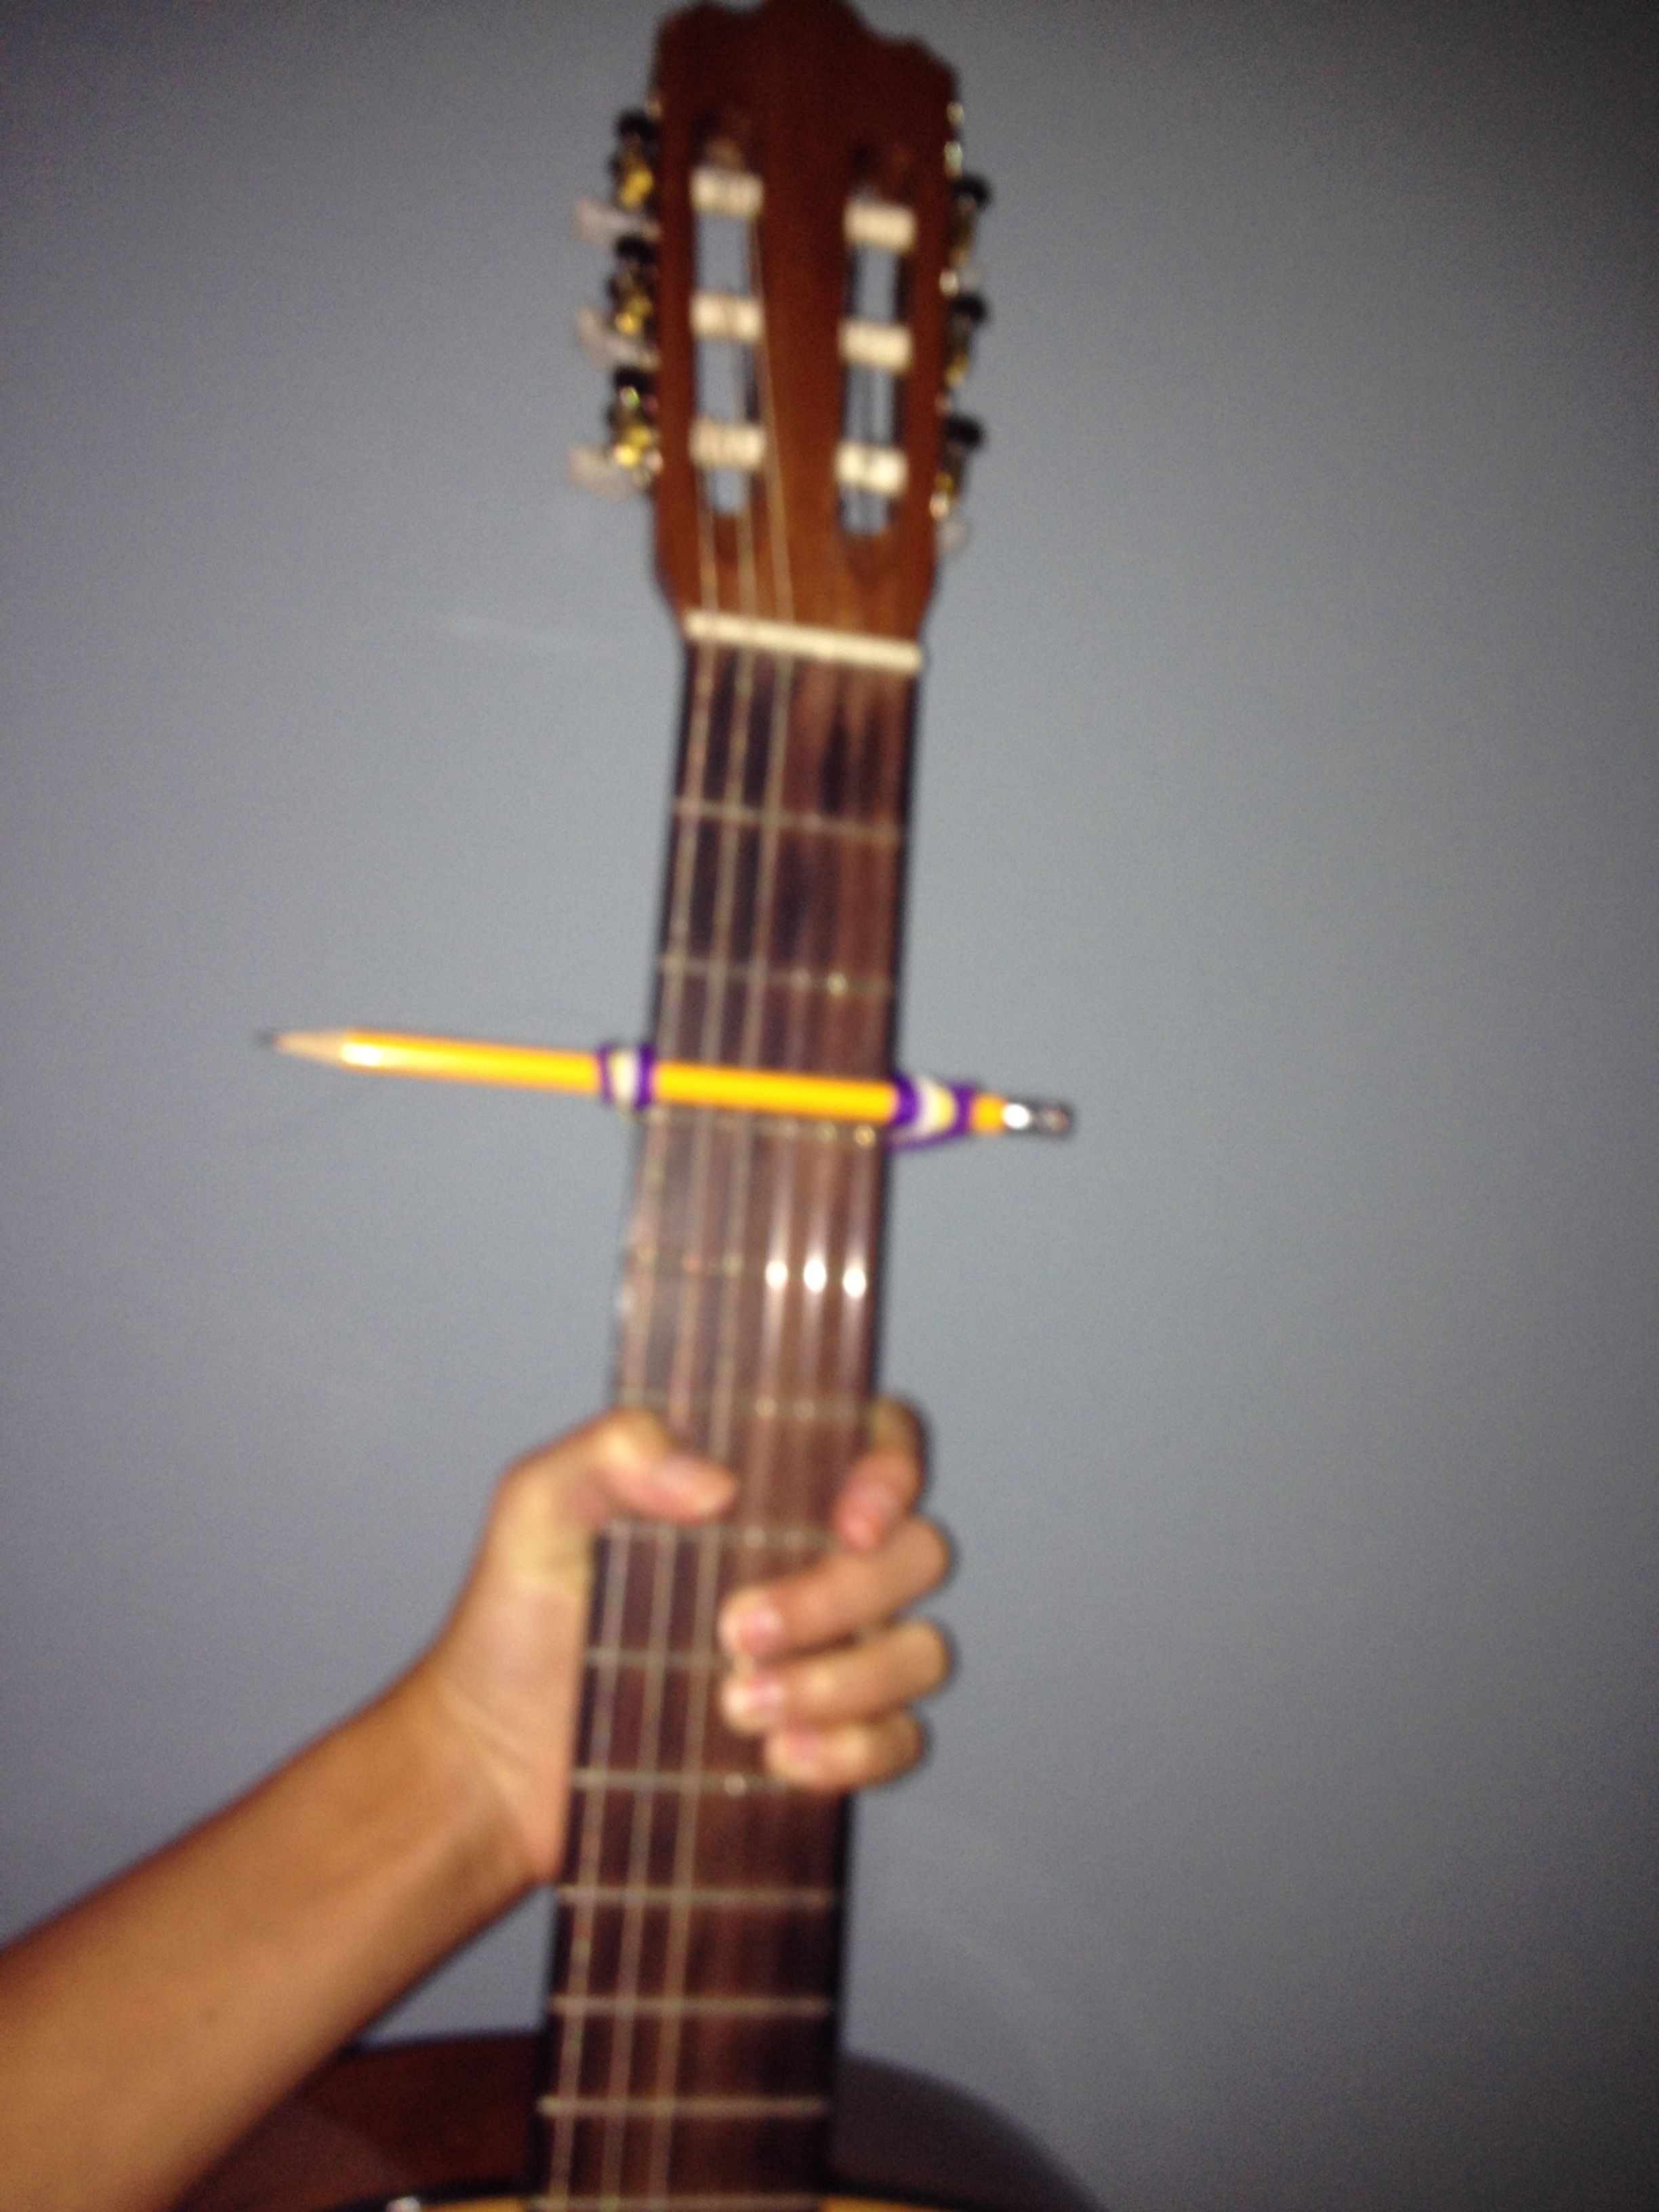 Diy Capo For Guitar Ok So I Just Ordered A Capo Off Amazon For 2